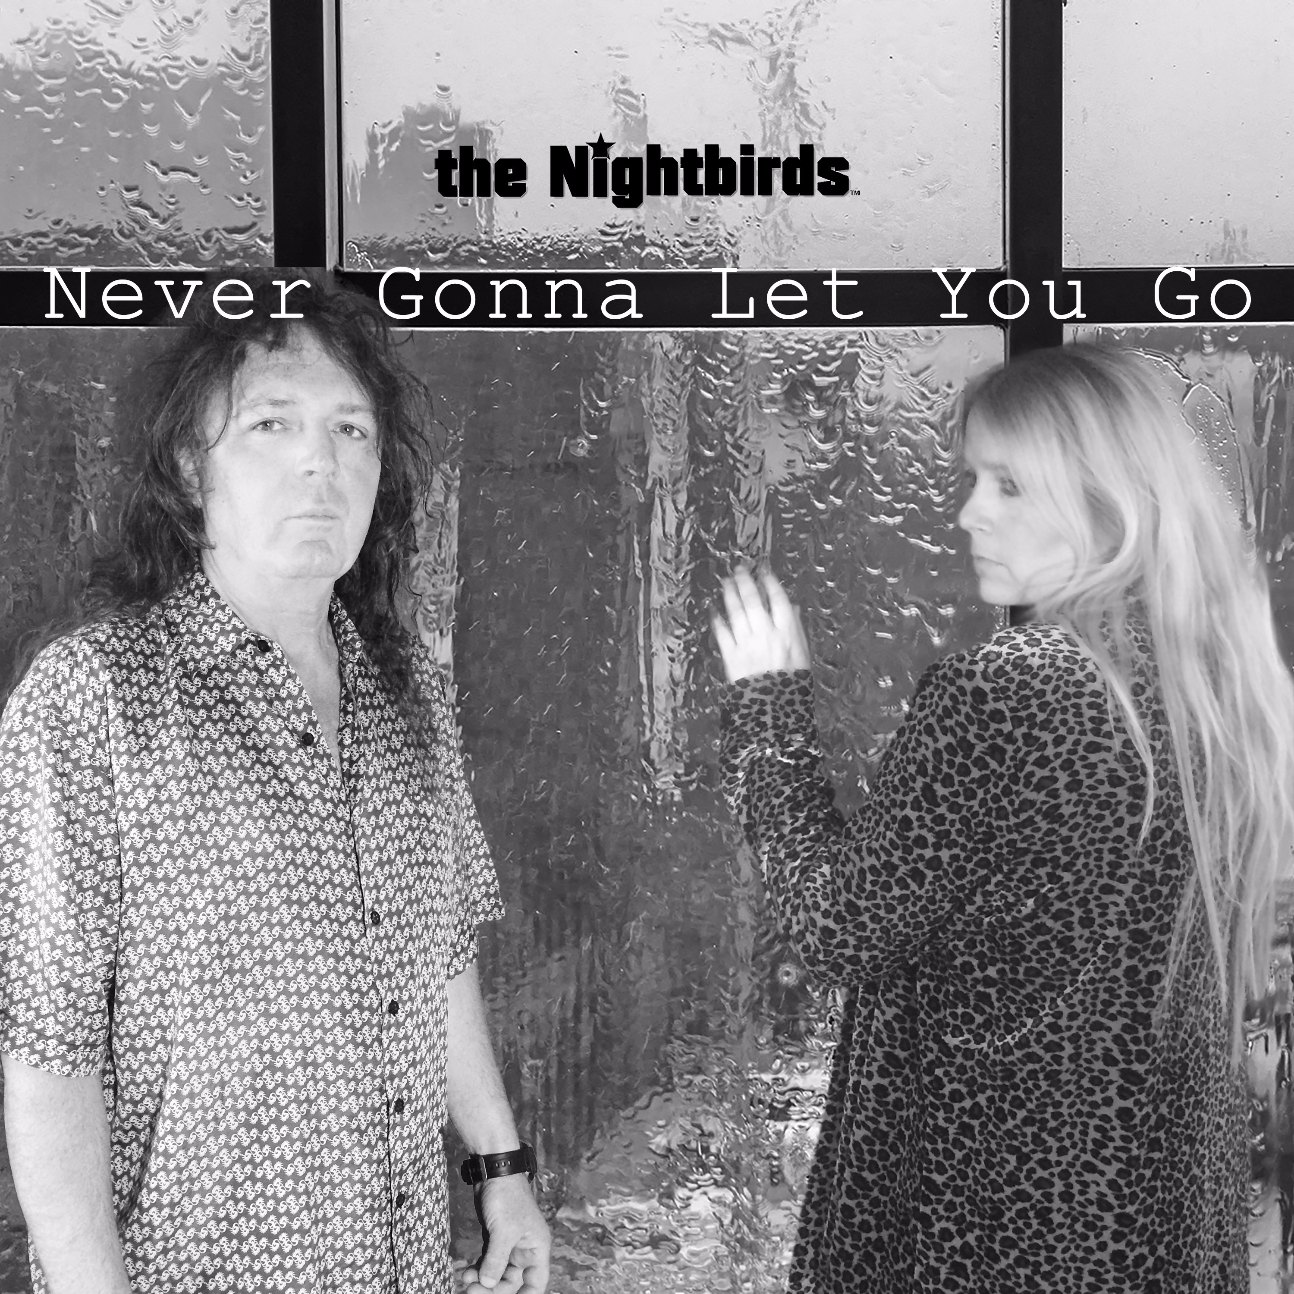 the nightbirds never gonna let you go